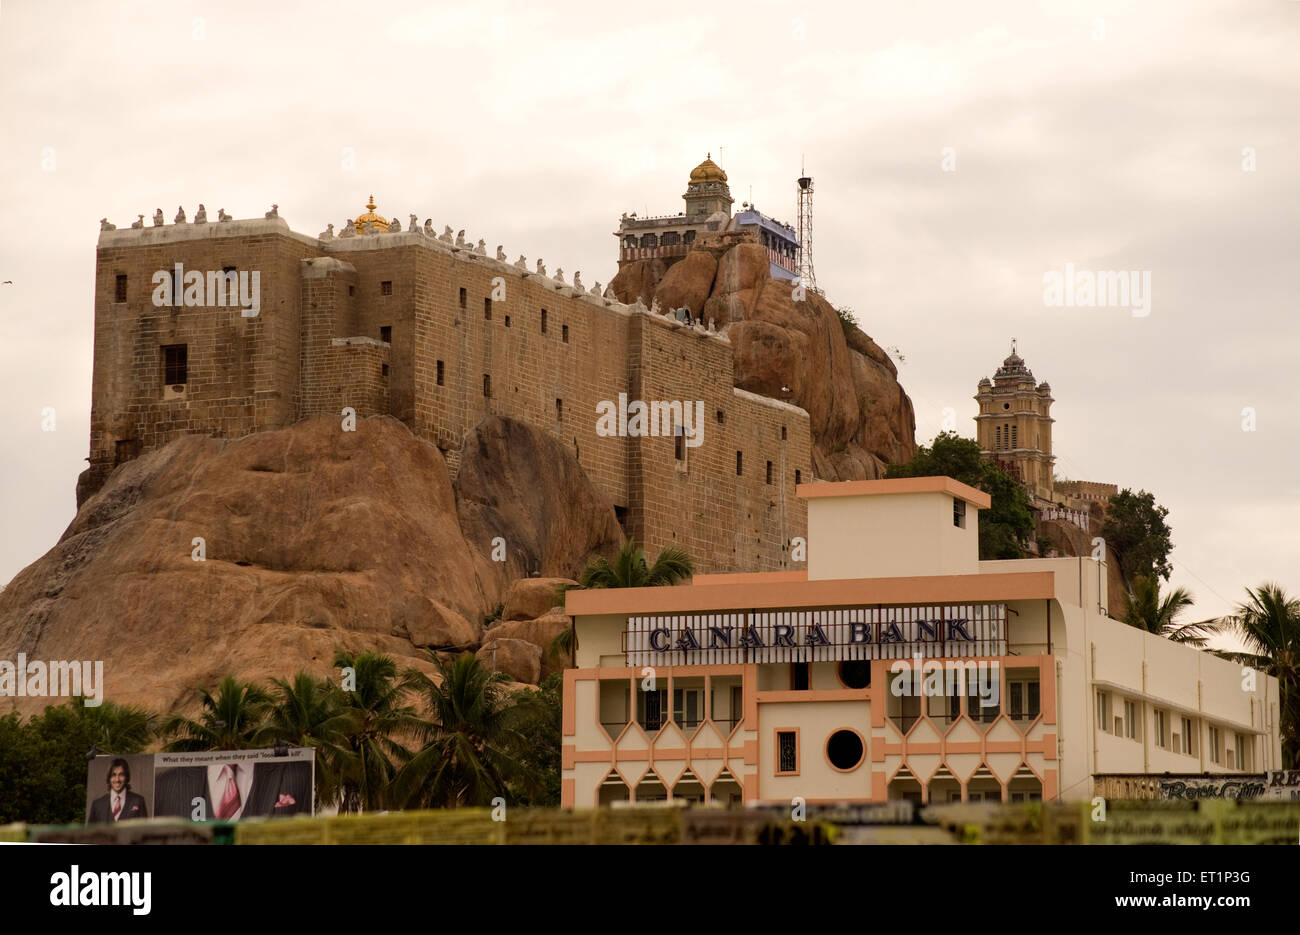 Rock fort and temple dedicated to lord vinayaka in Tiruchirappalli ; Tamil Nadu ; India - Stock Image